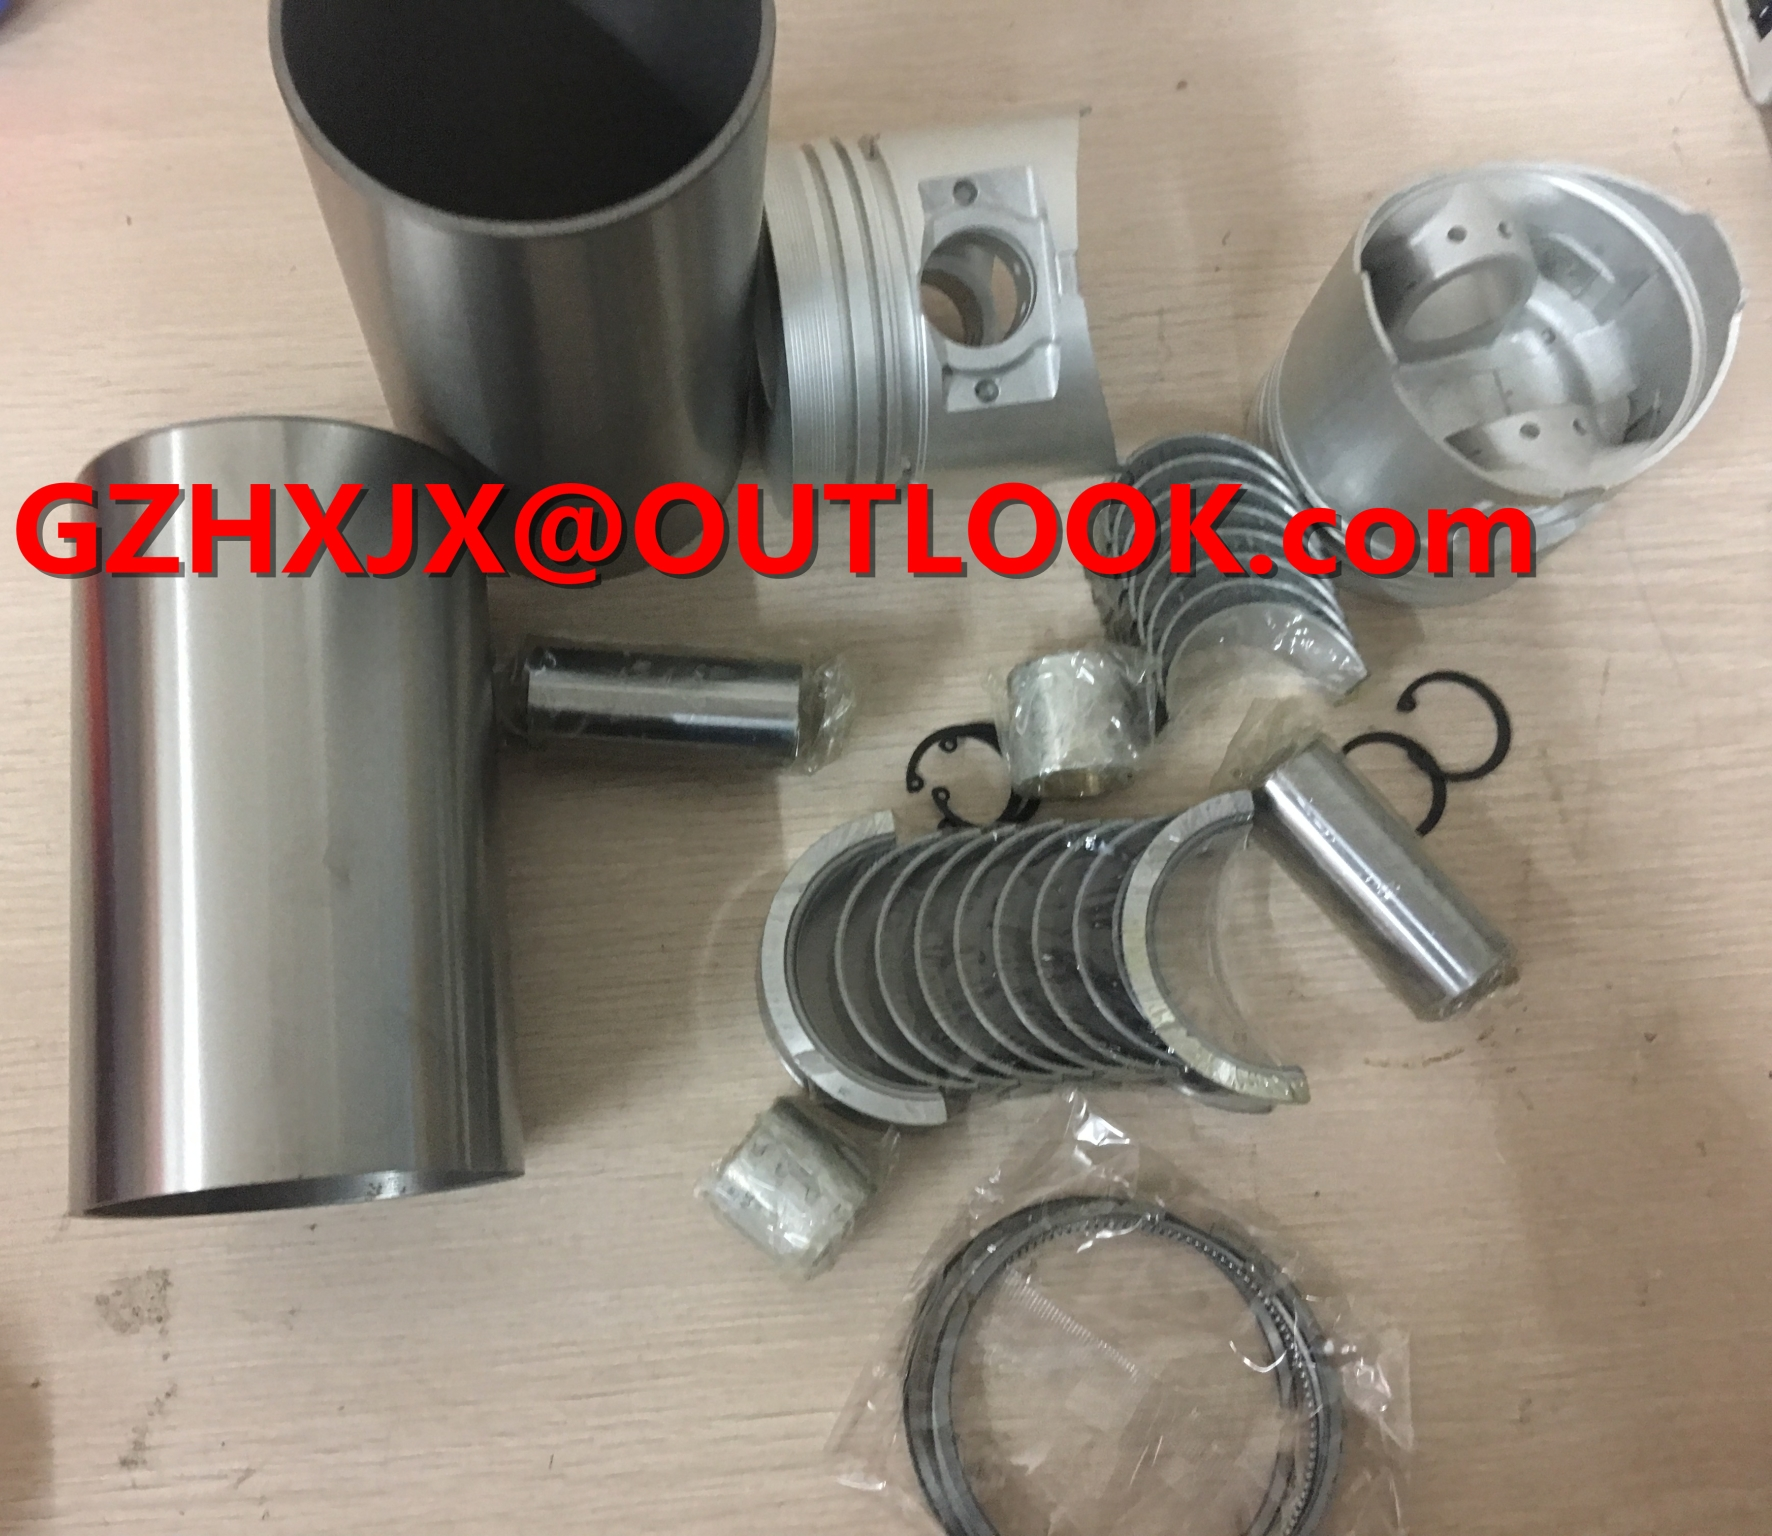 for Excavator CAT Engine Parts 3066B 3066C 3066D 3066 Rebuild kits piston  ring Cylinder liner Overhaul kit, View for Excavator CAT Engine Parts 3066B